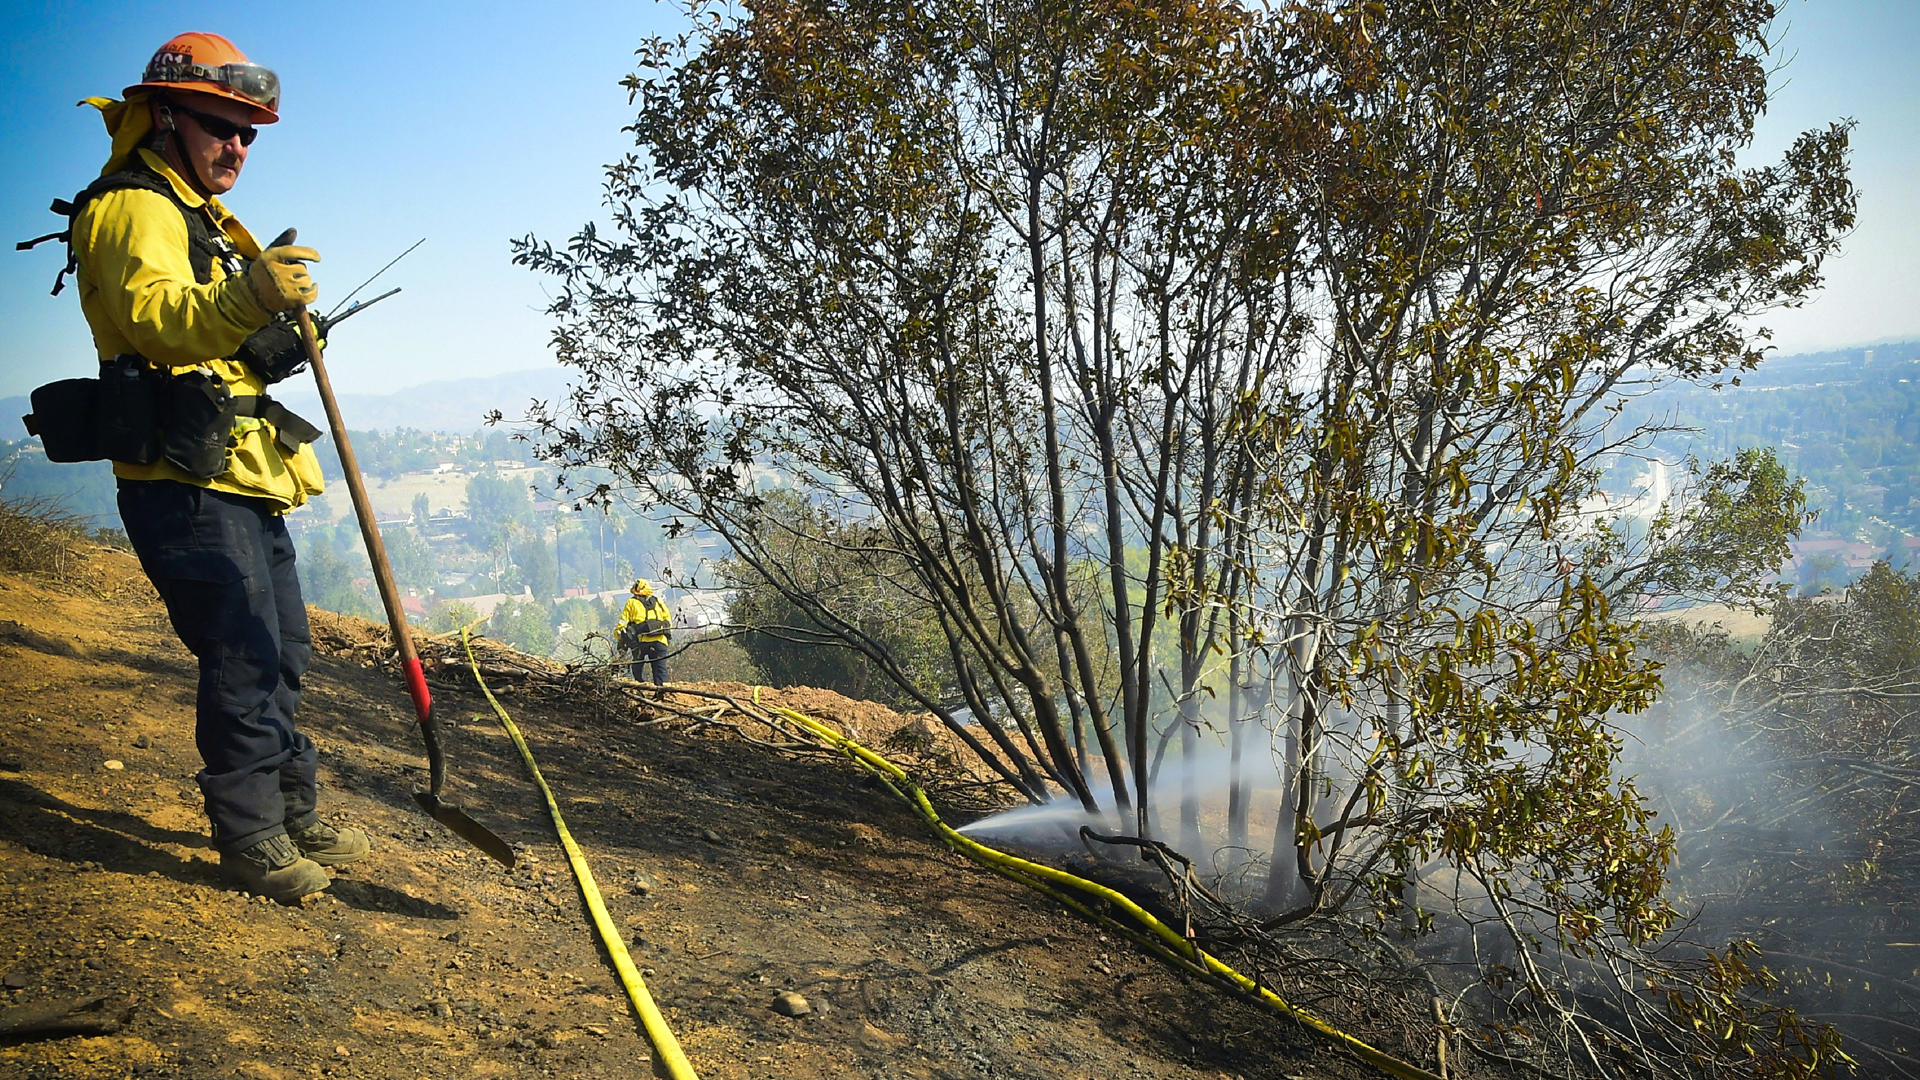 A firefighter overlooks the scene standing beside a a punctured hose spraying out water on a hillside overlooking homes in West Hills, near Malibu, California on November 11, 2018, as the battle to control the Woolsey Fire continues. (Credit: FREDERIC J. BROWN/AFP/Getty Images)